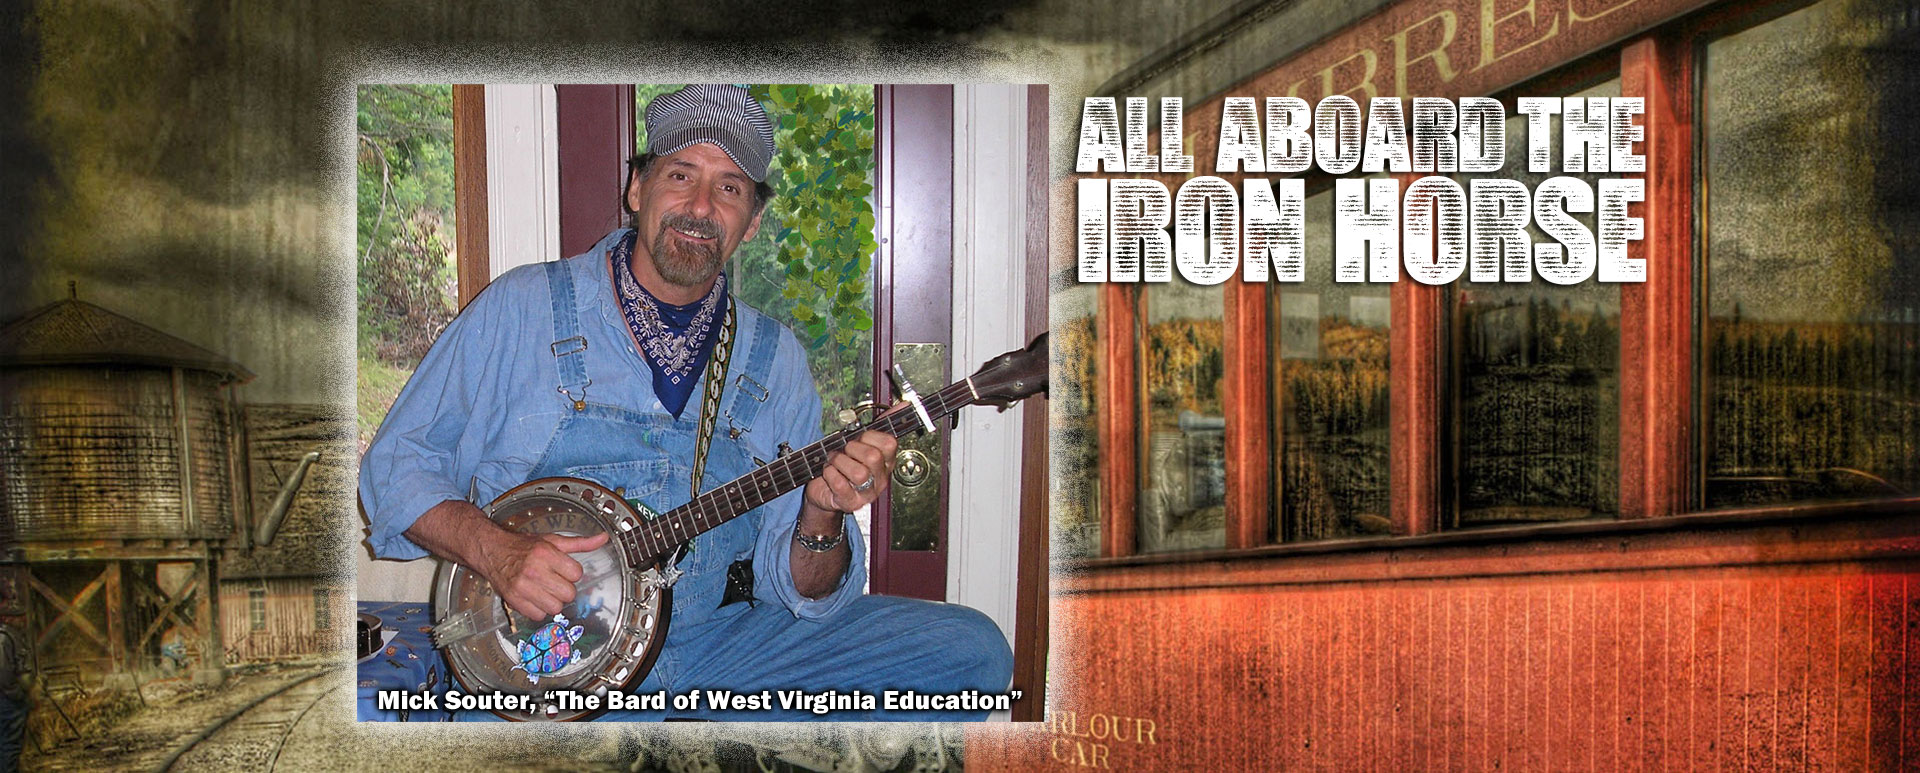 Mick Souter - All Aboard The Iron Horse